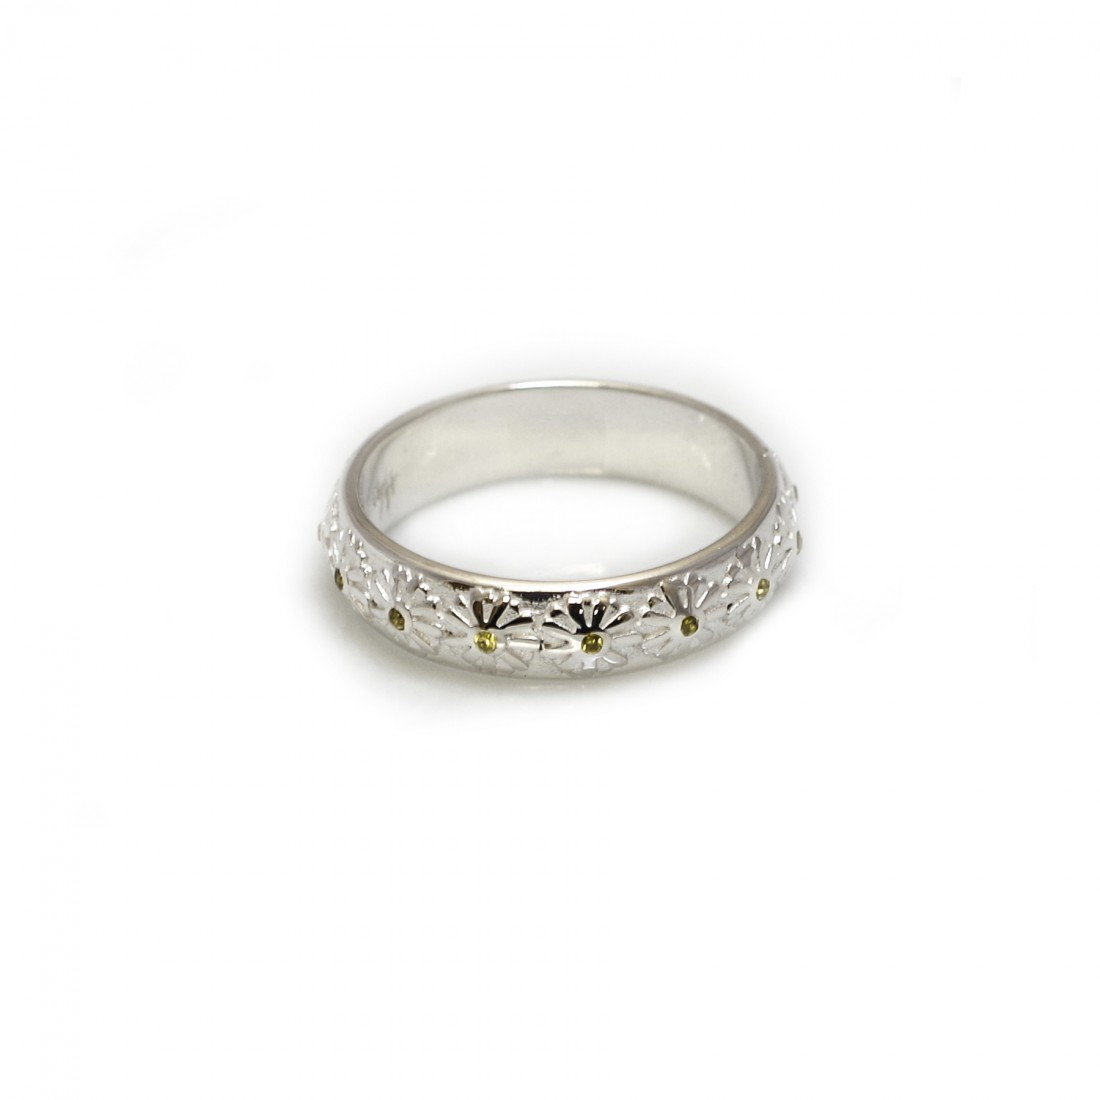 Exclusive Sterling Silver & Citrine Daisy Ring